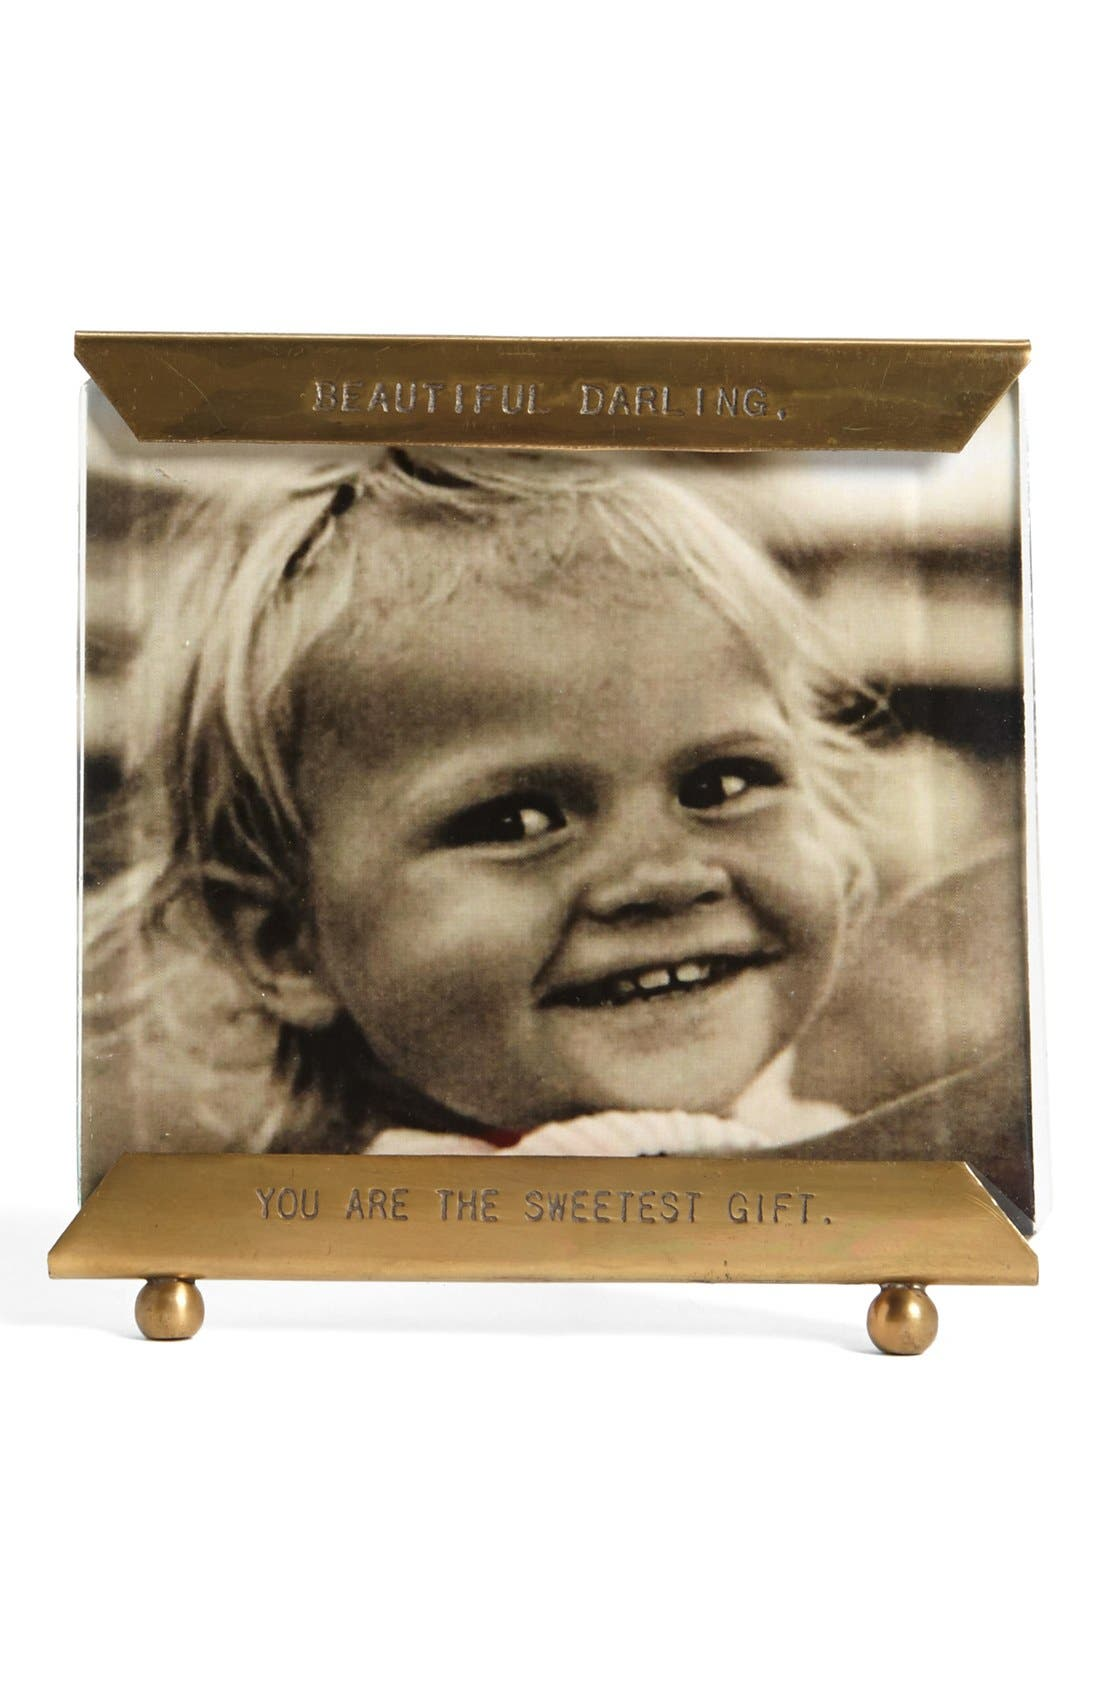 Alternate Image 1 Selected - Sugarboo Designs 'Beautiful Darling, You Are the Sweetest Gift' Frame